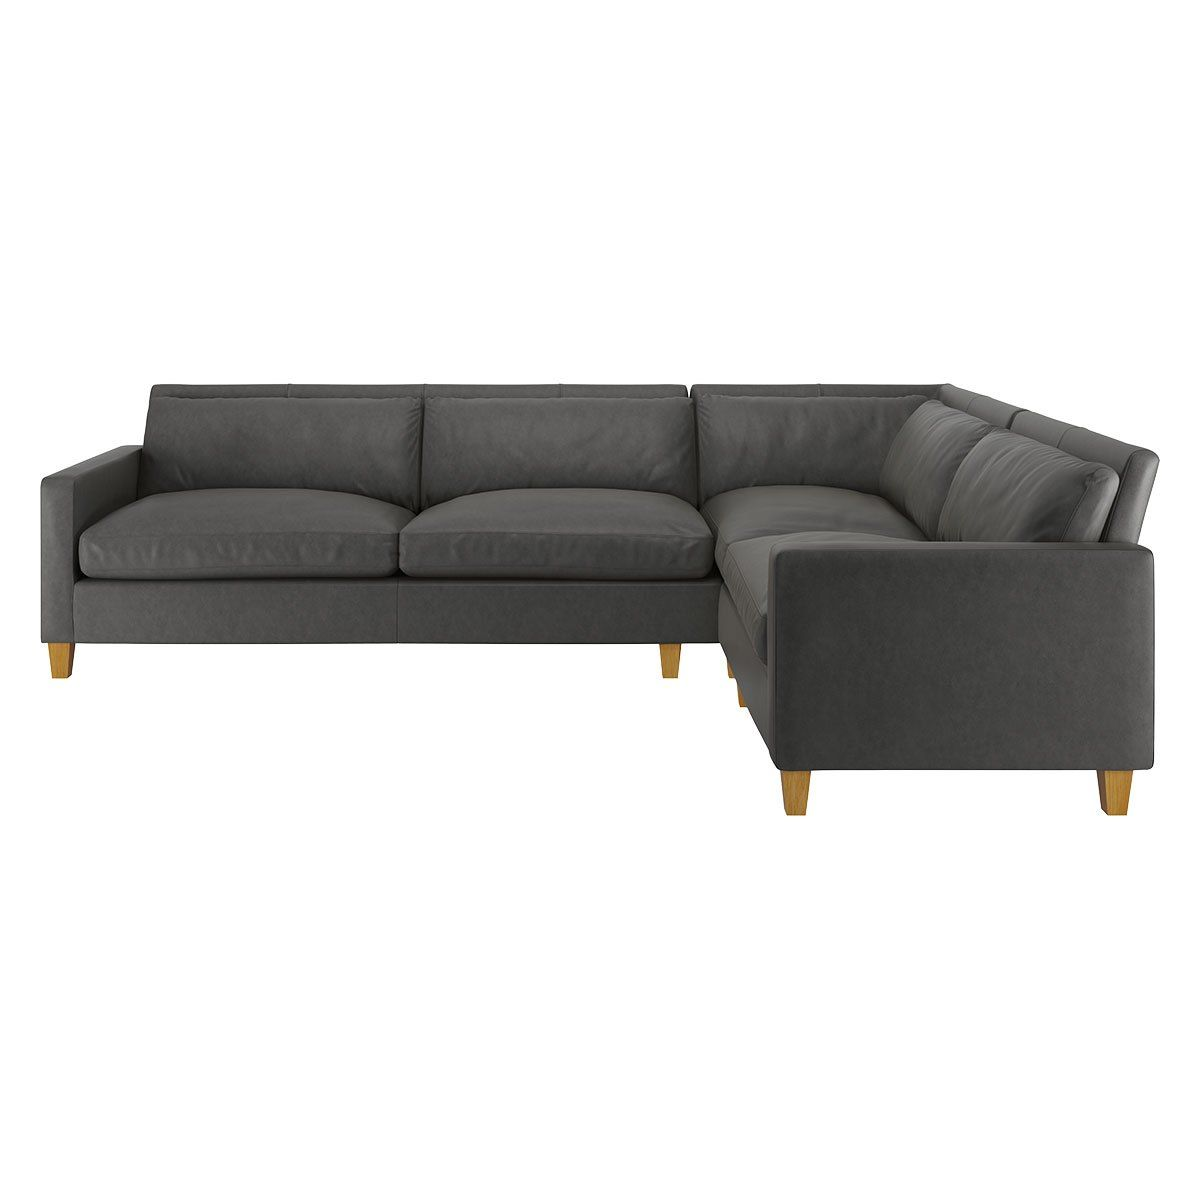 Healy Left Corner Sofa In Grey Faux Leather With Chrome Legs Corner Sofa